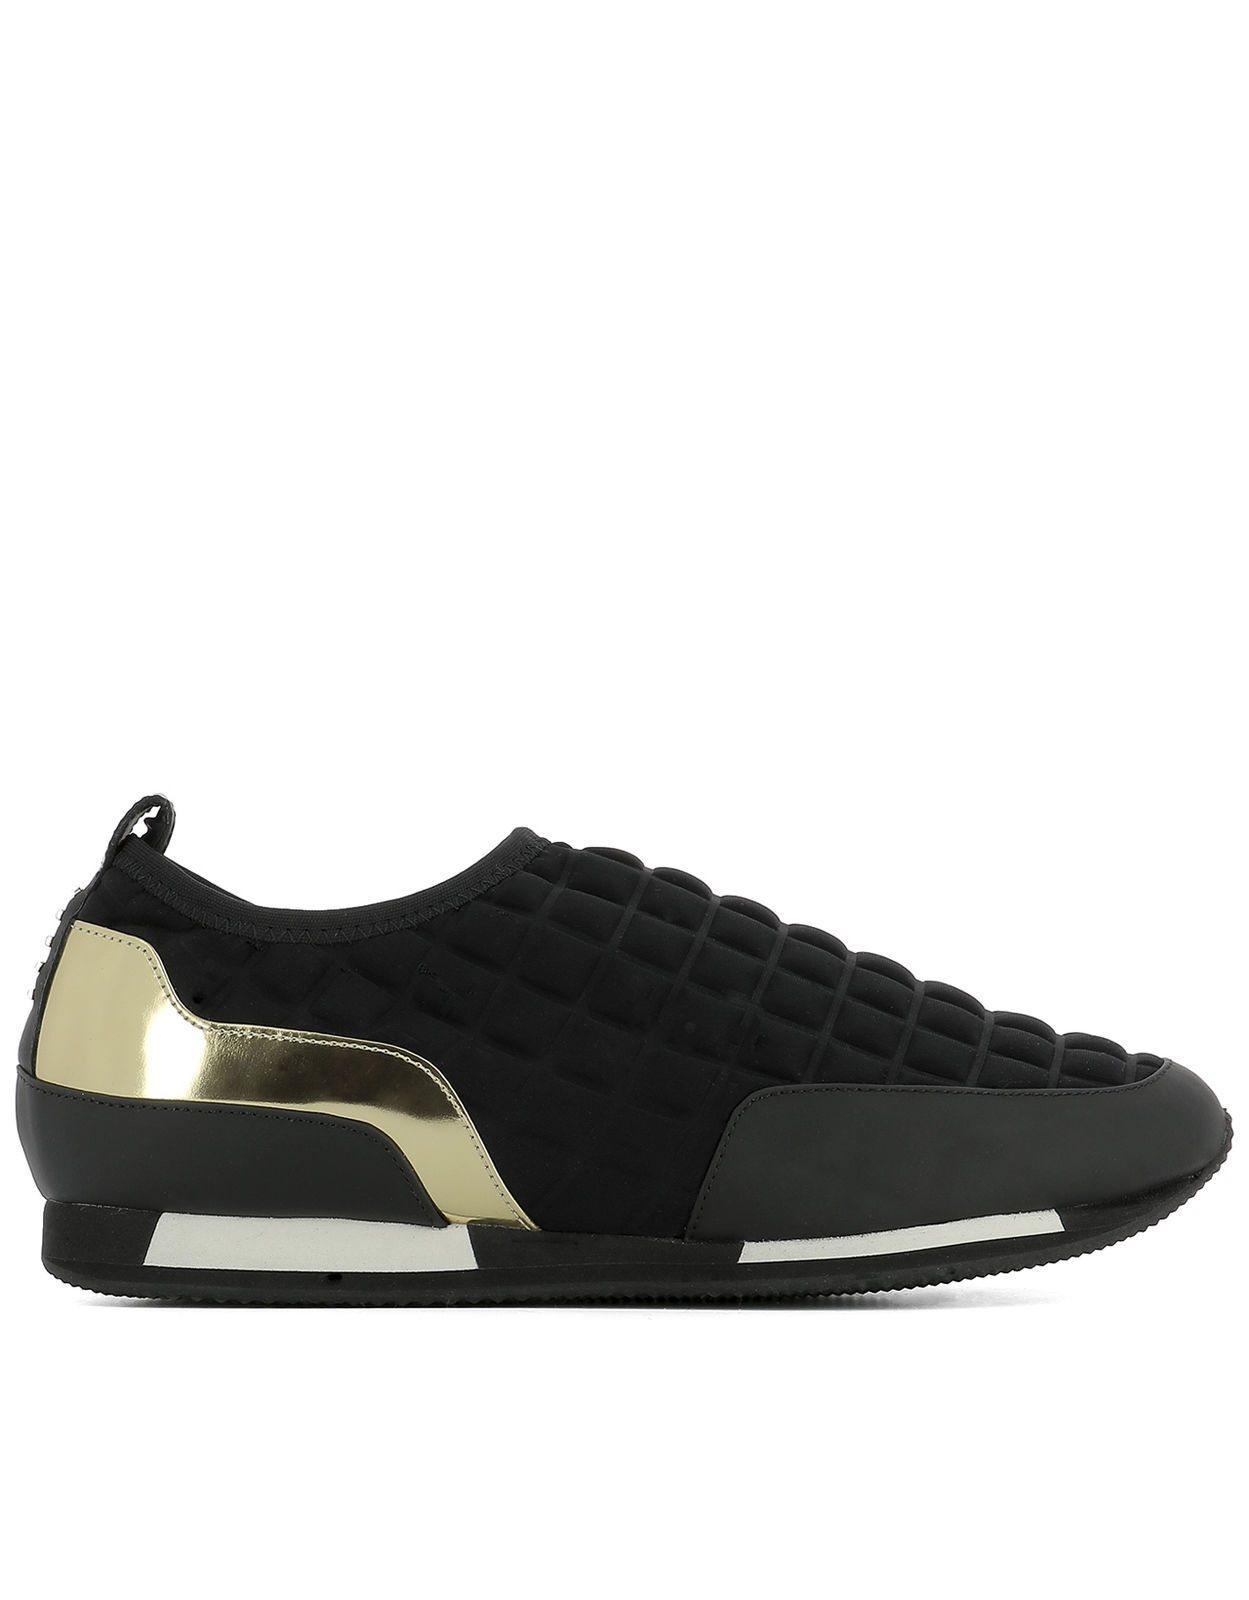 SZ 36 BALMAIN LOW TOP SLIP ON BLACK AND gold MAYA TRAINERS